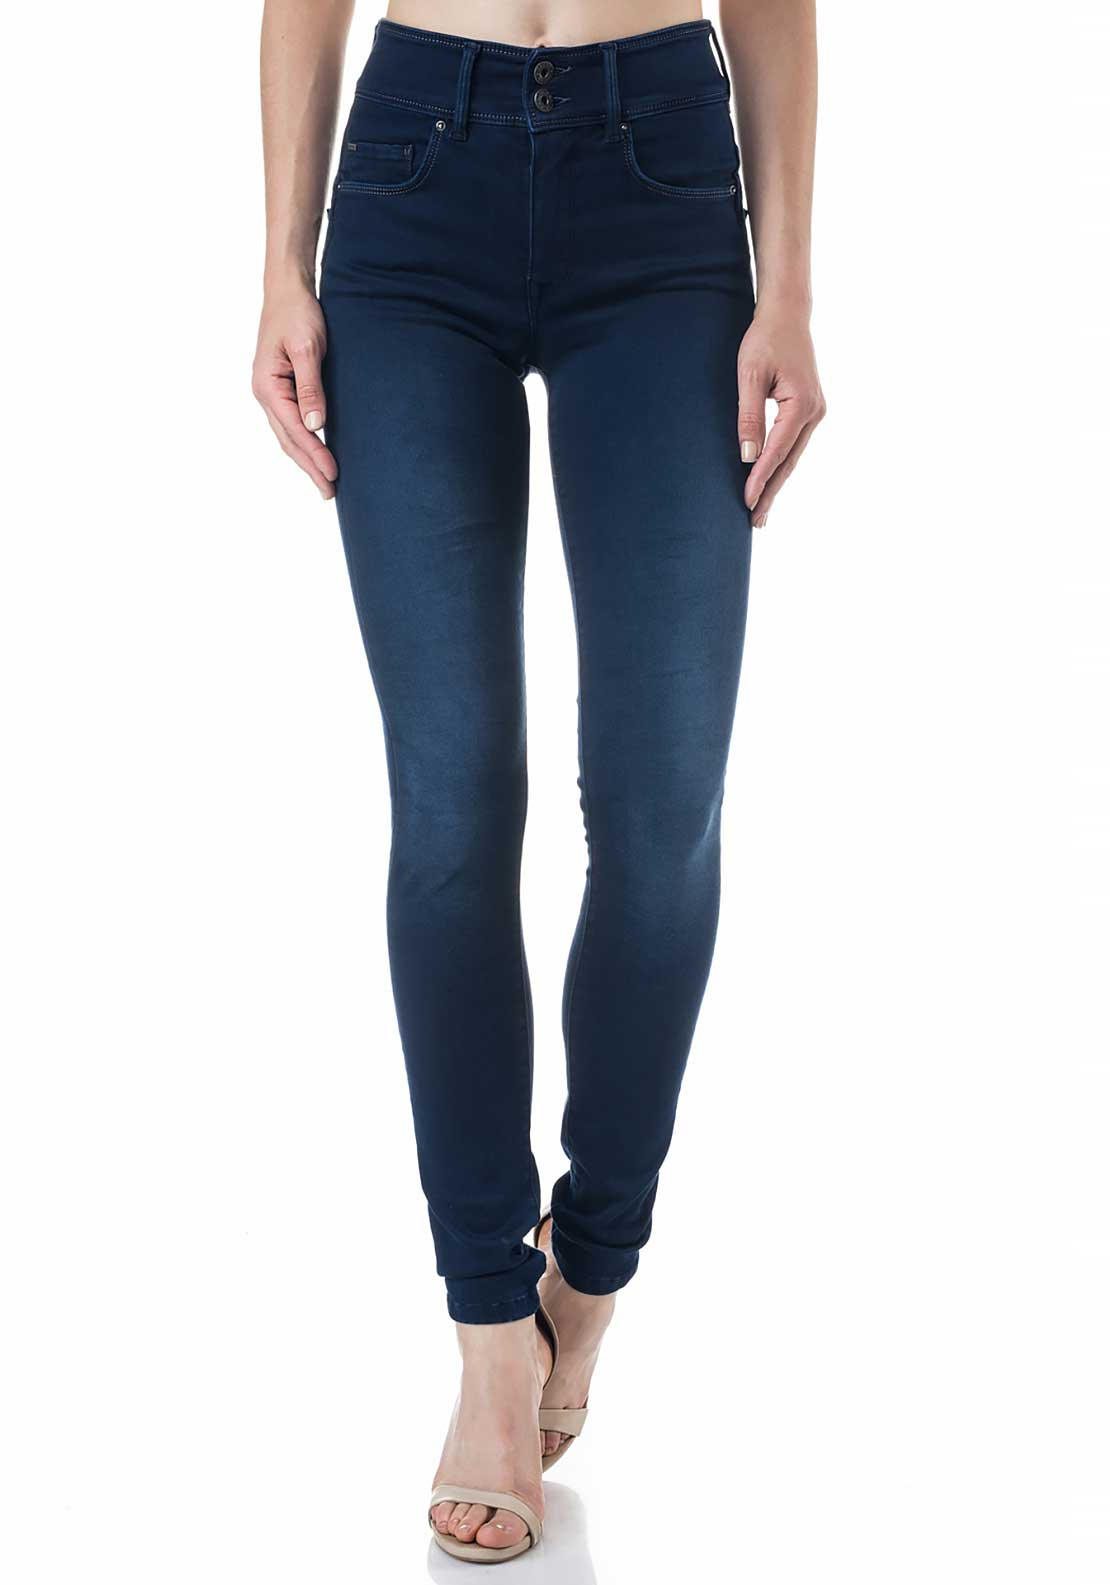 Salsa Secret High Waist Push In Skinny Leg Soft Touch Jeans, Dark Blue Denim